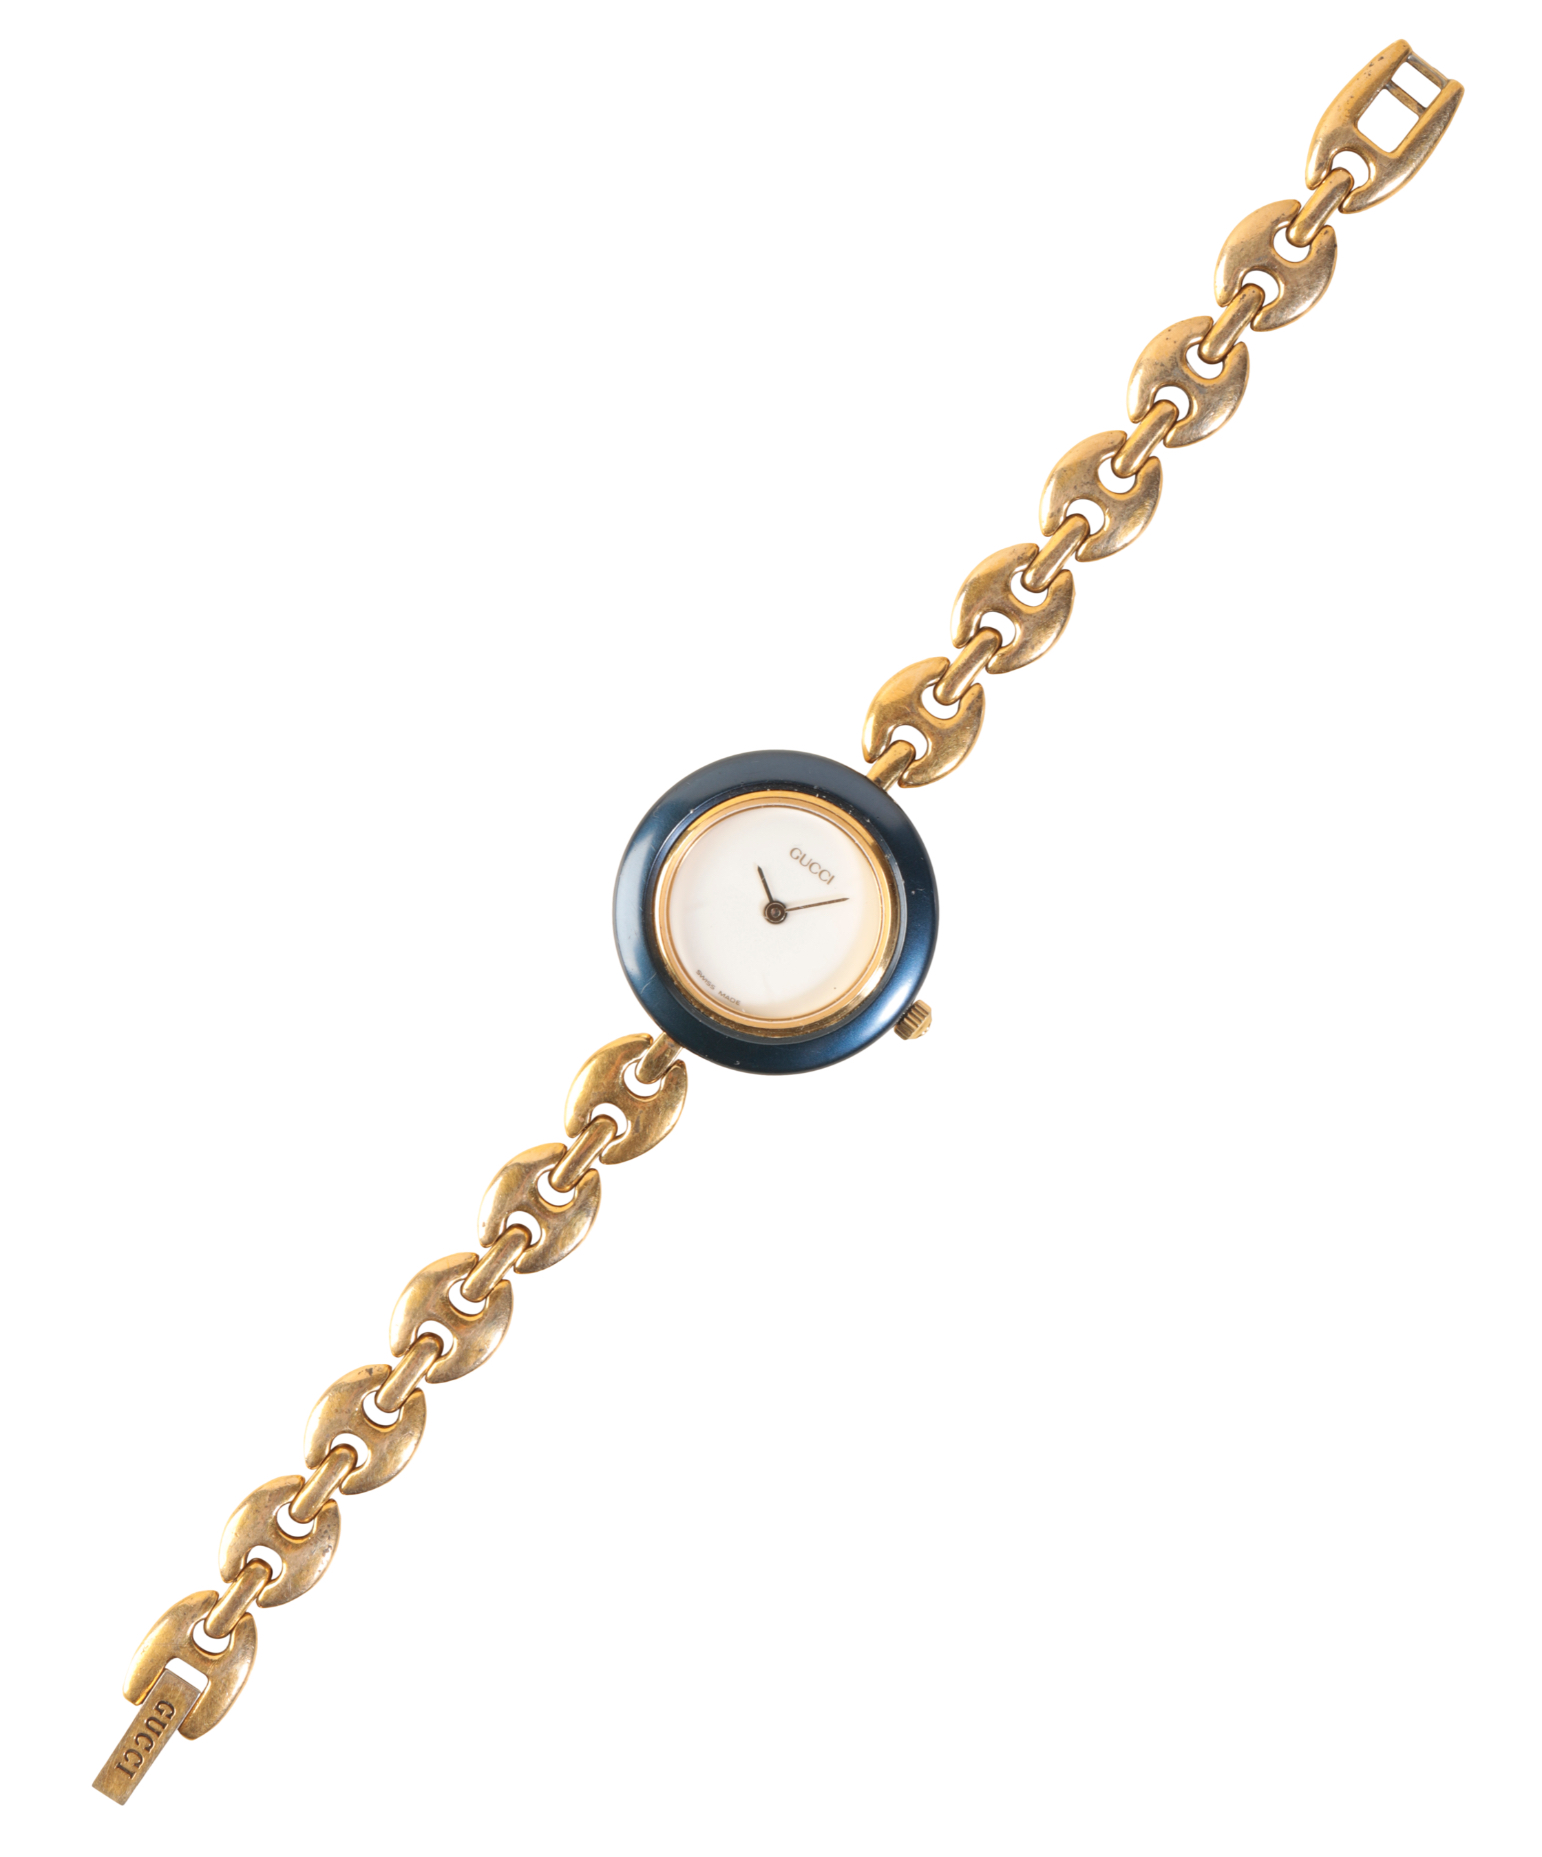 GUCCI LADY'S GOLD PLATED BRACELET WATCH